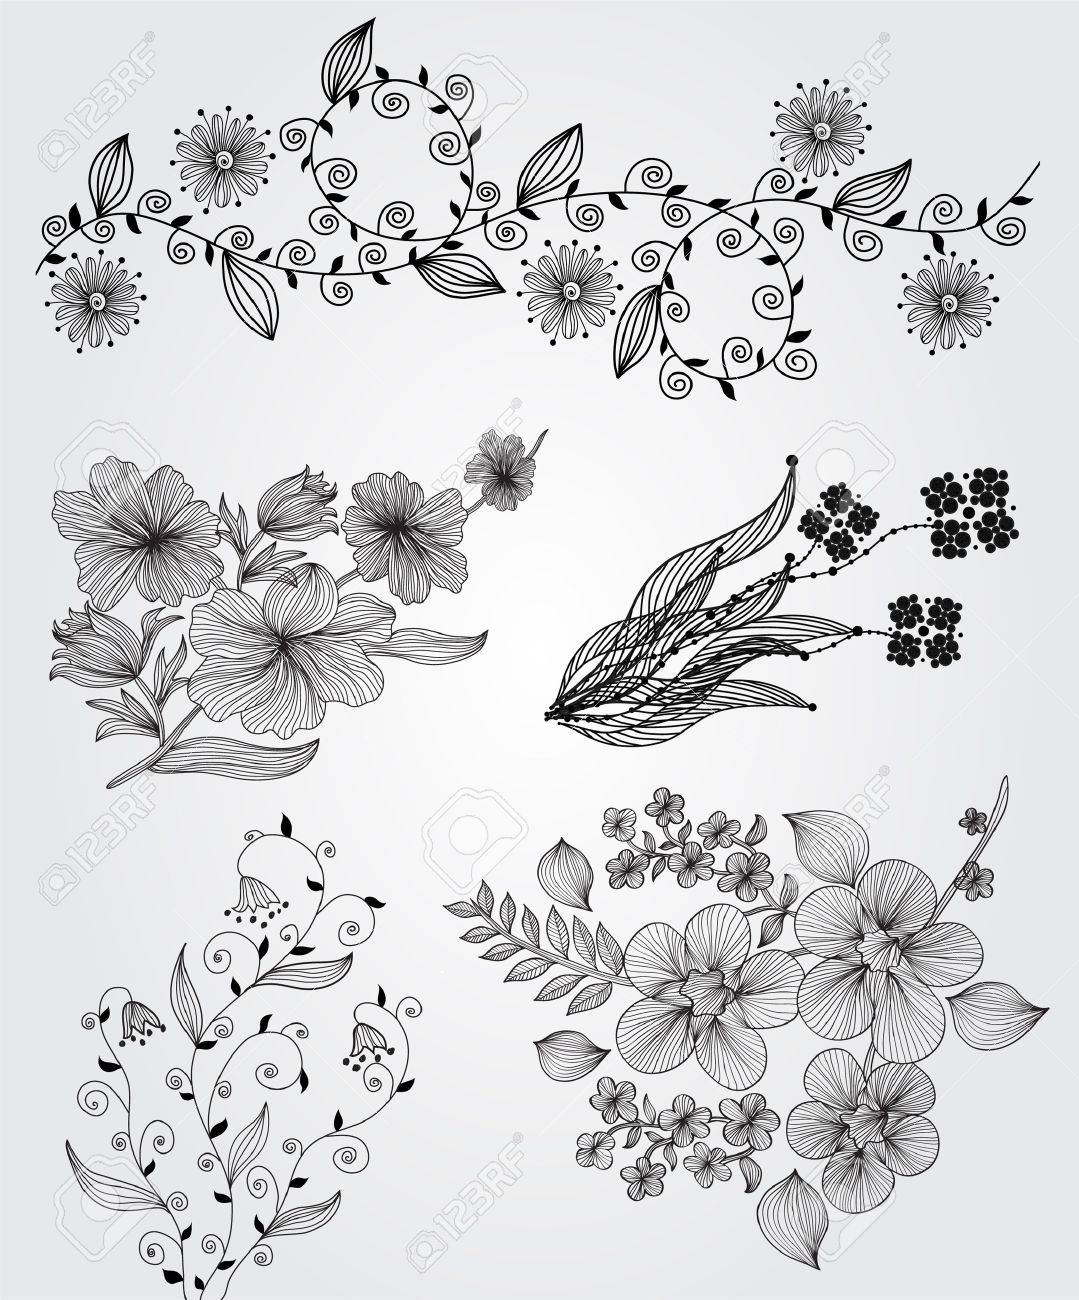 set of decorative floral elements for your design Stock Vector - 11578879